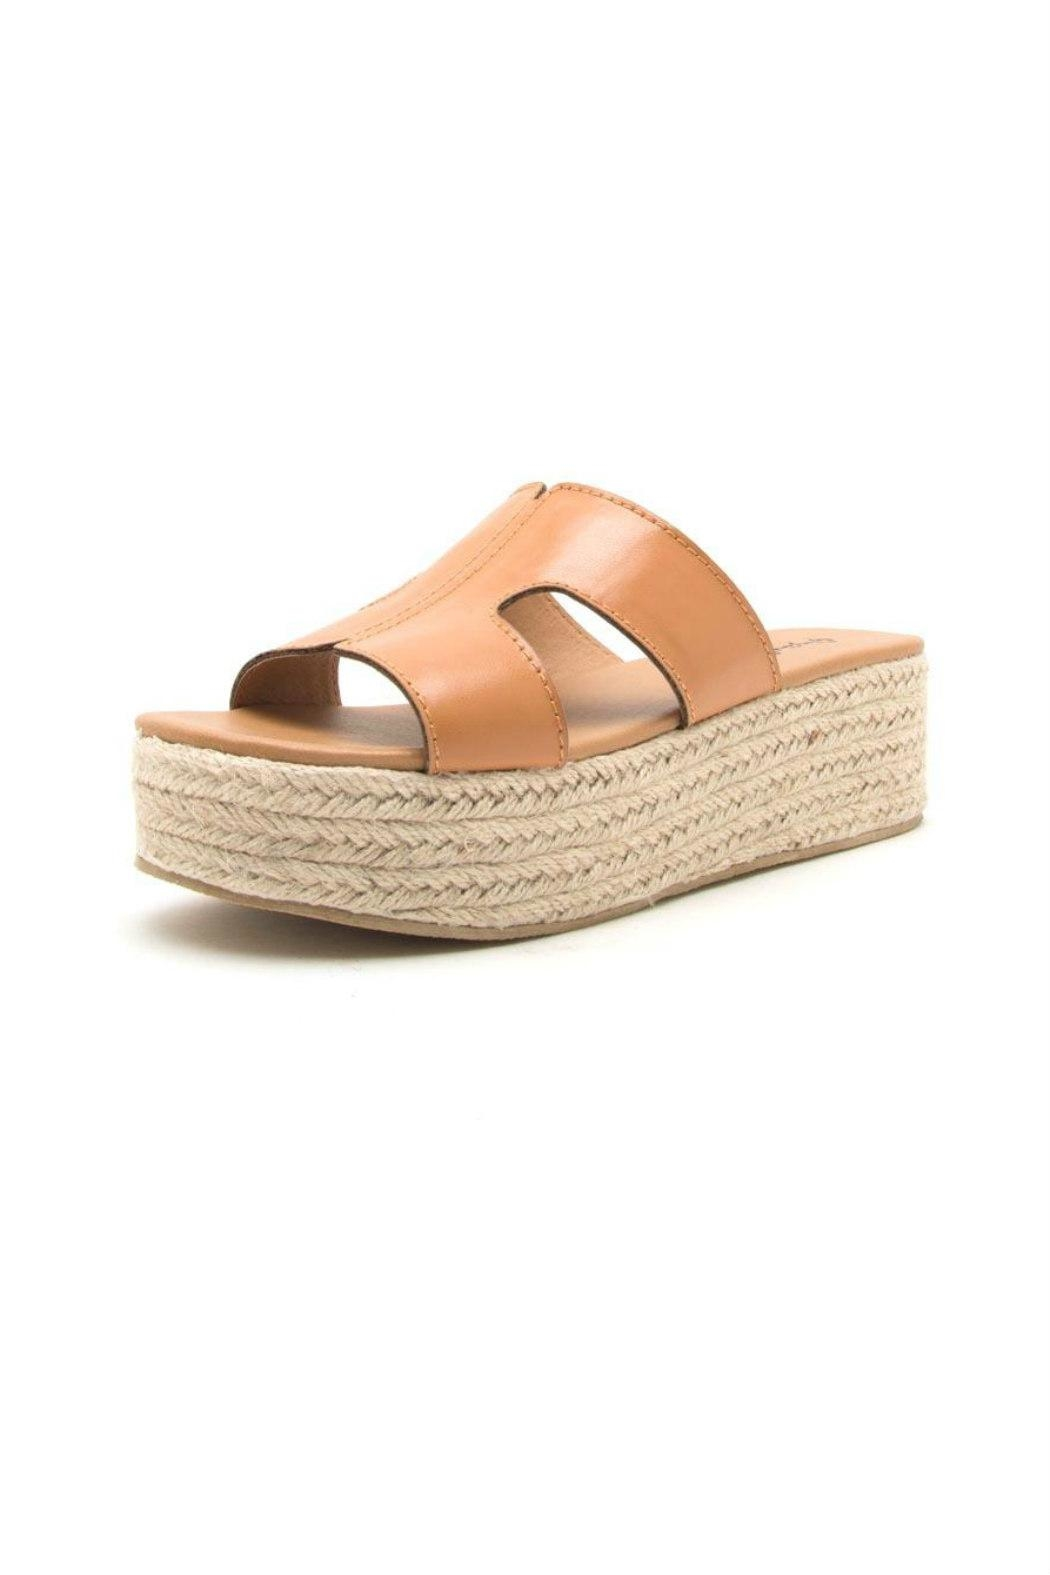 Qupid Beachie Espadrille Slide - Front Cropped Image